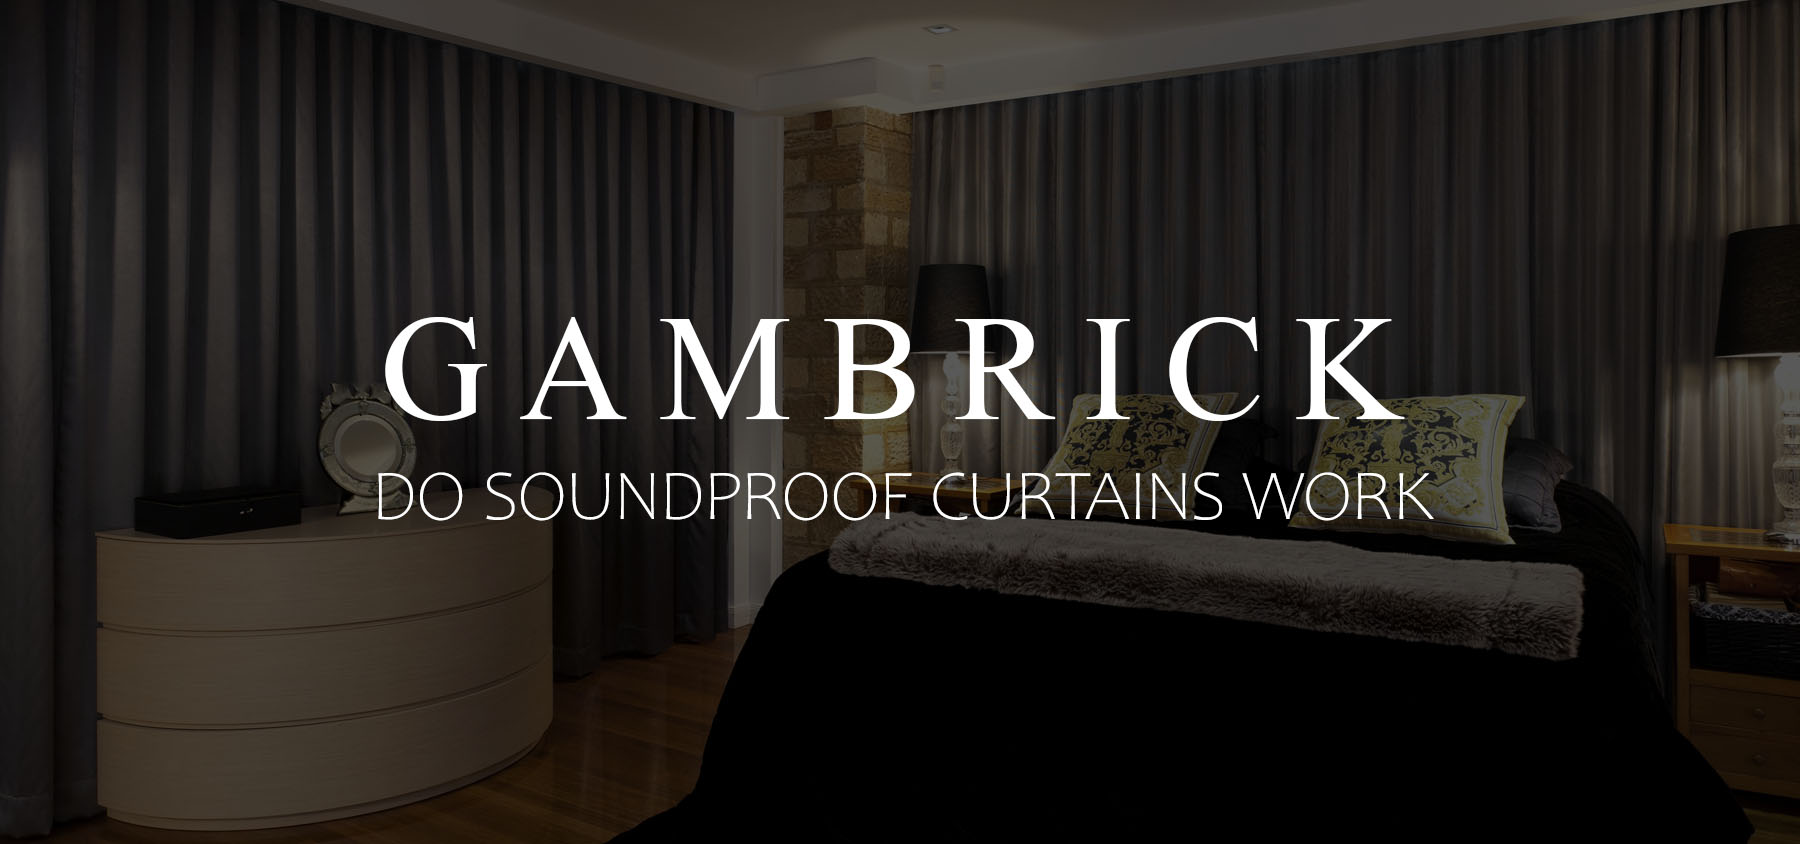 do soundproof curtains work banner pic